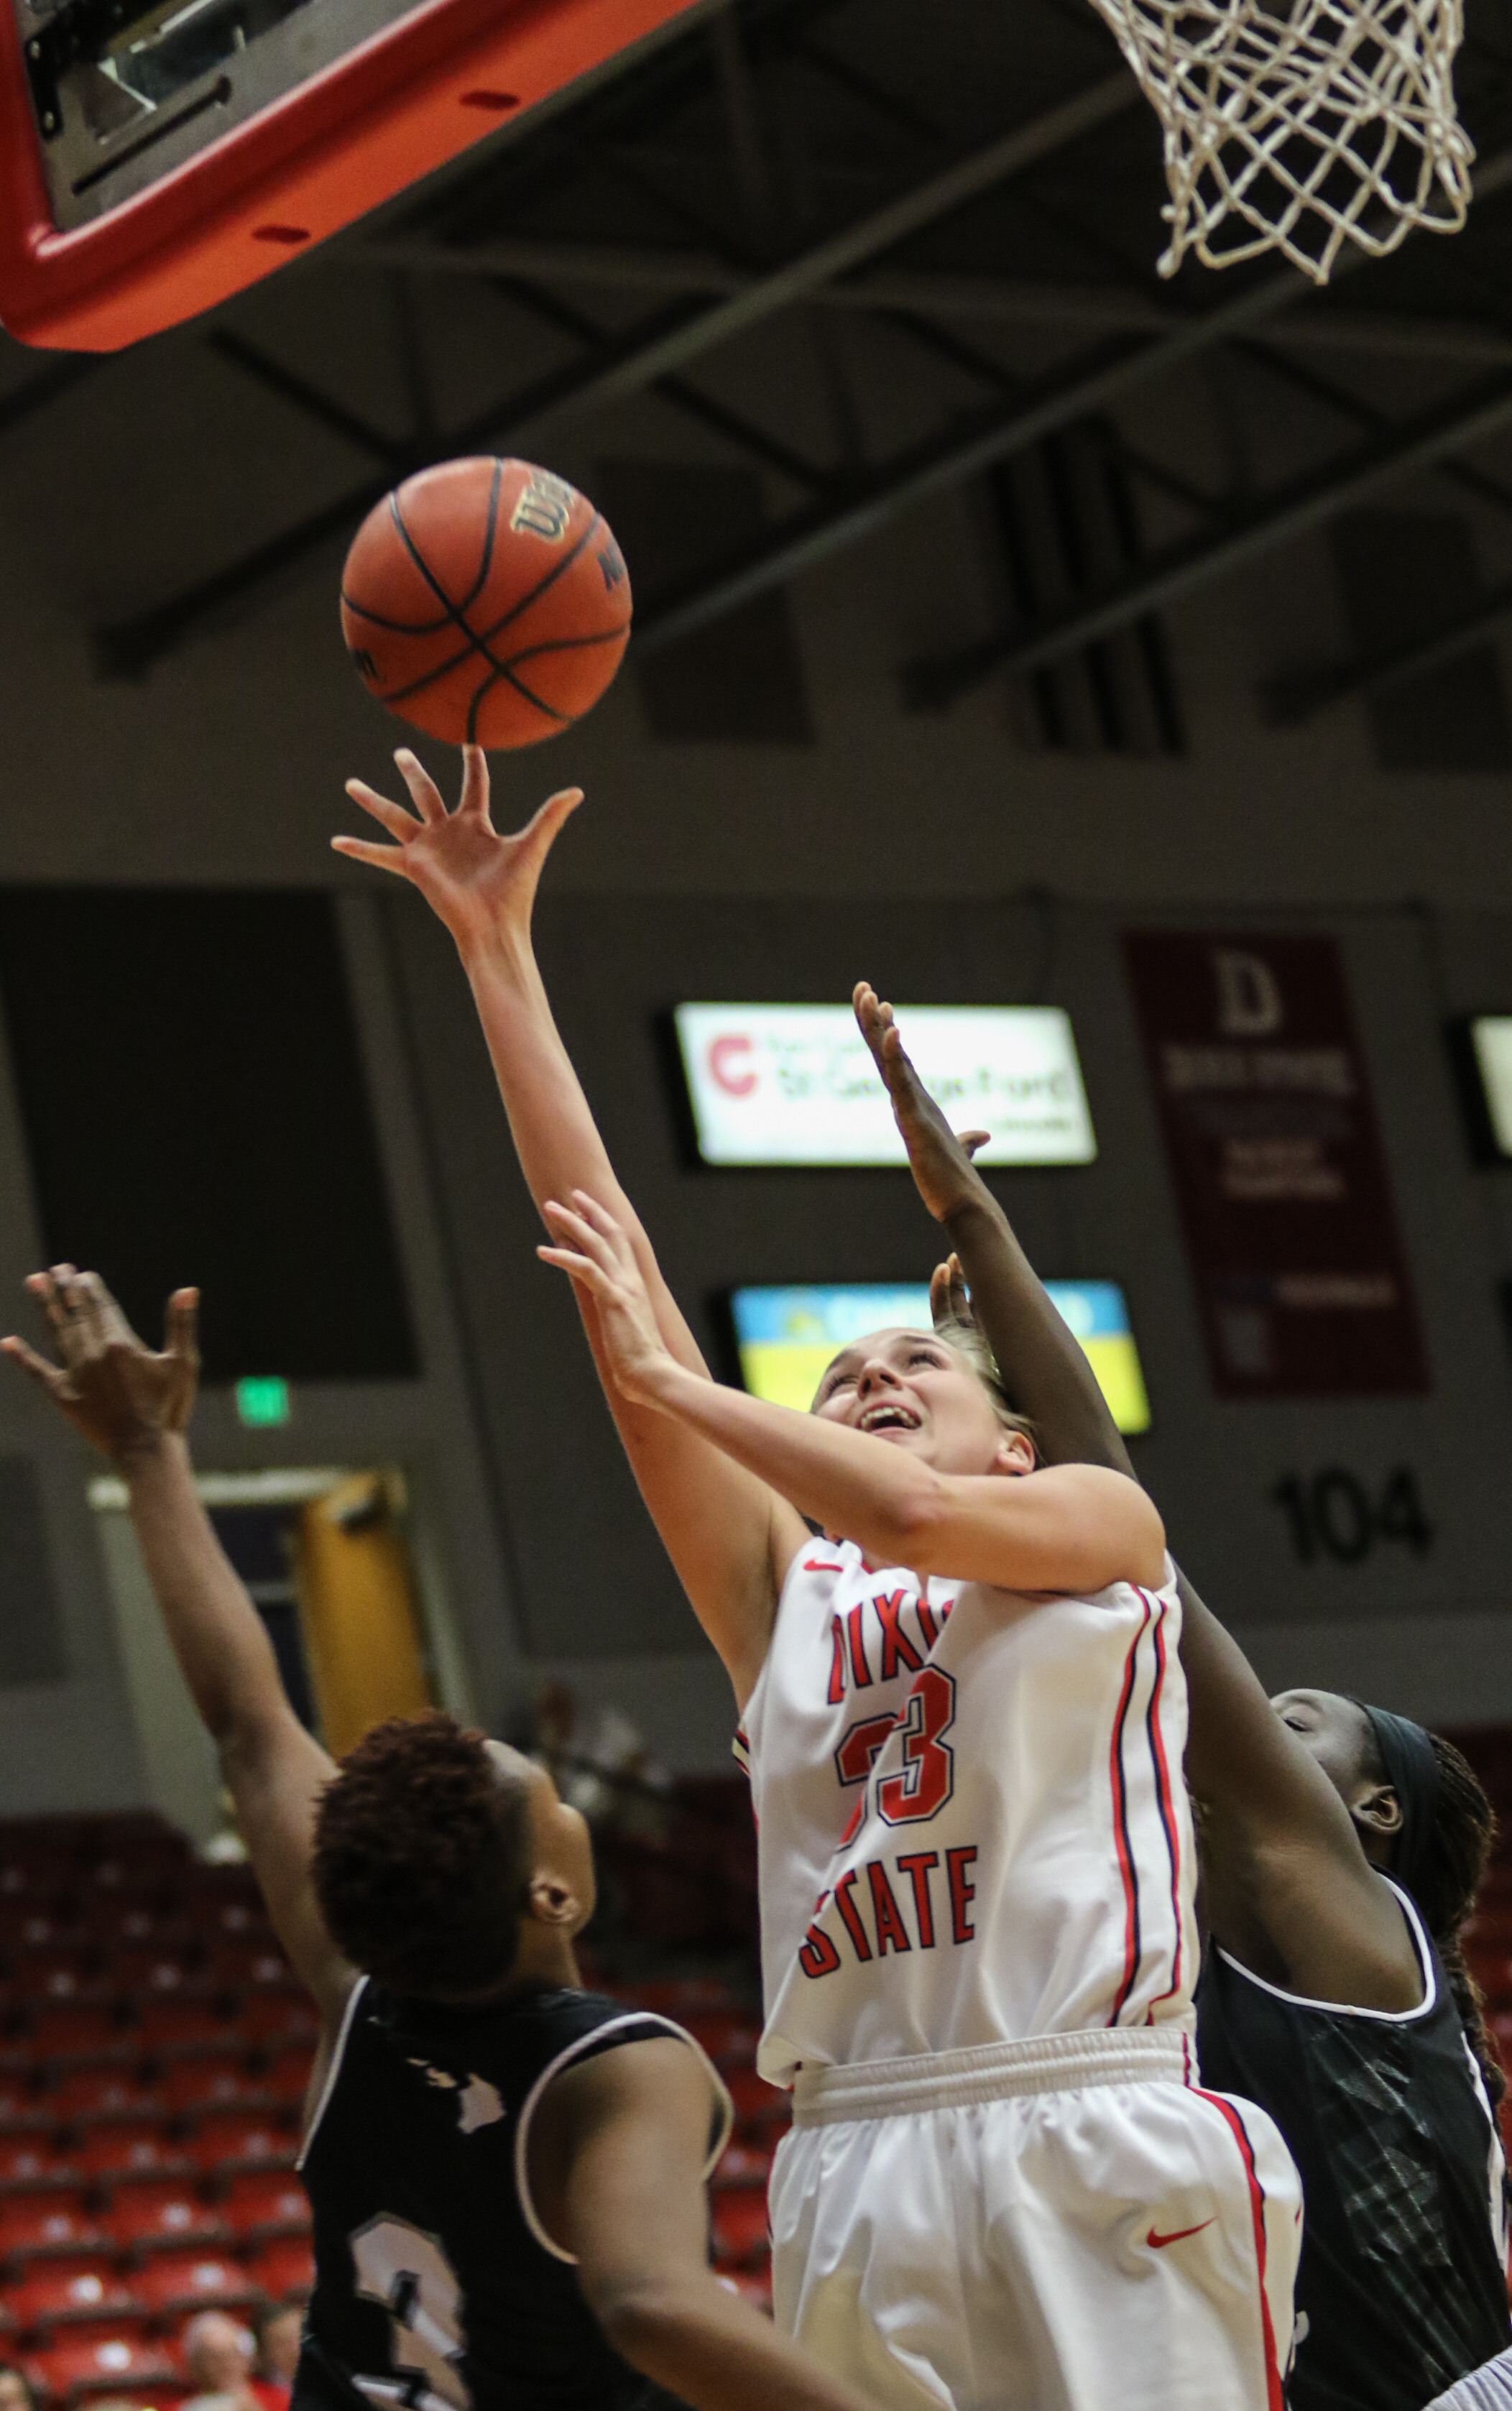 Dixie State's Taylor Mann (33), Dixie State University vs Hawai'i Pacific, Women's Basketball, St George, Utah, Jan.  30, 2016,   Photo by Kevin Luthy, St. George News